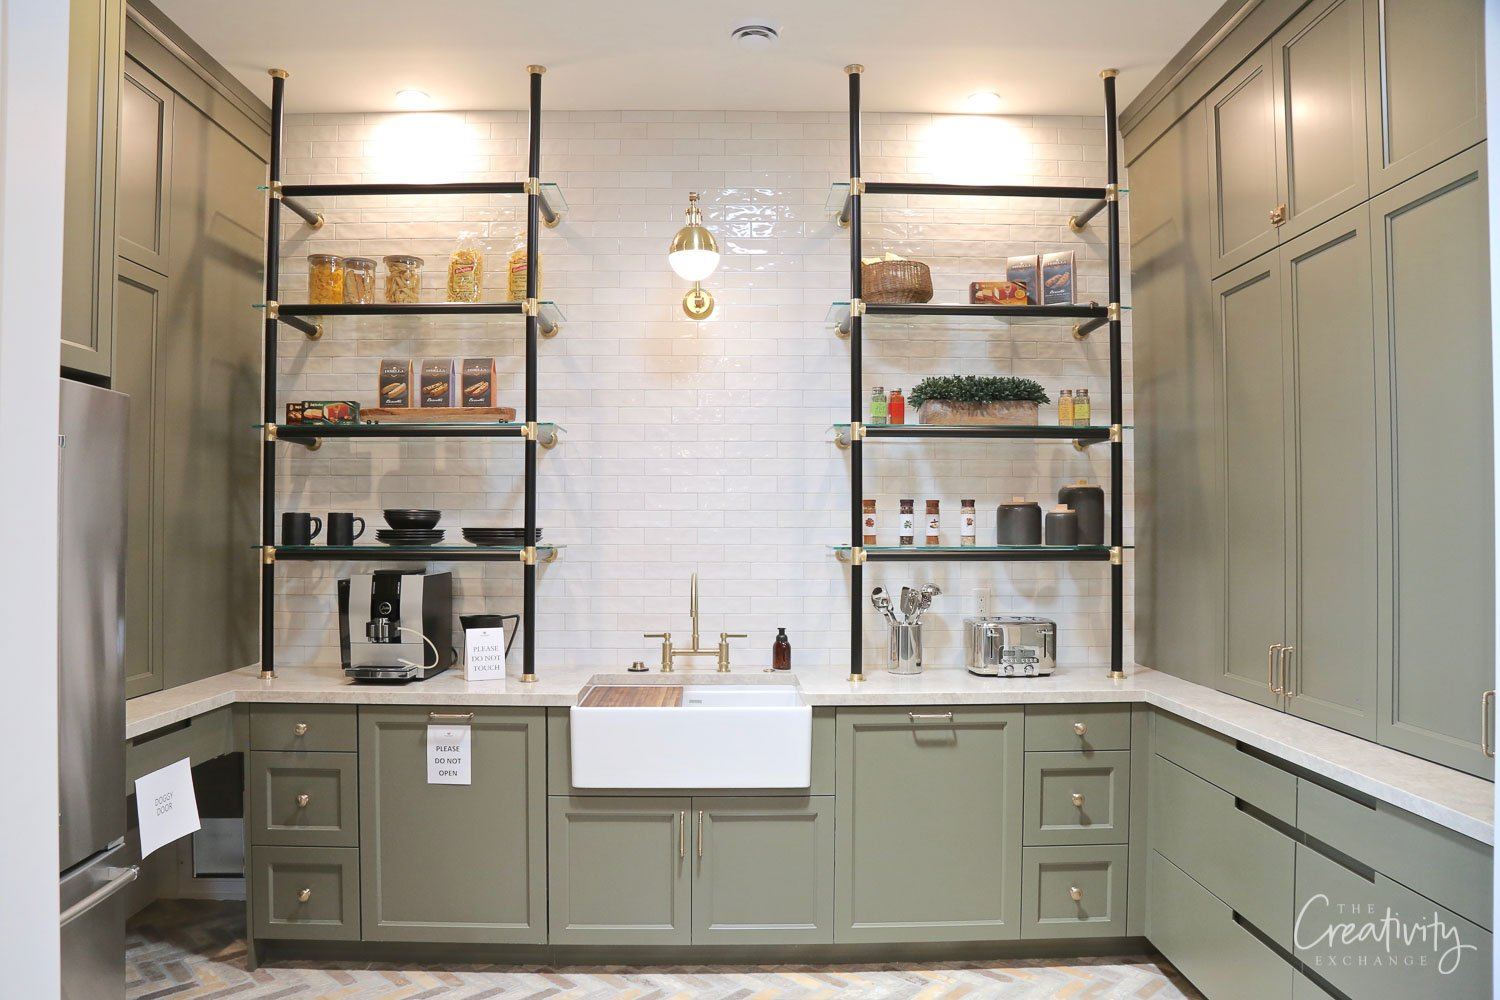 Pantry with built in metal shelves